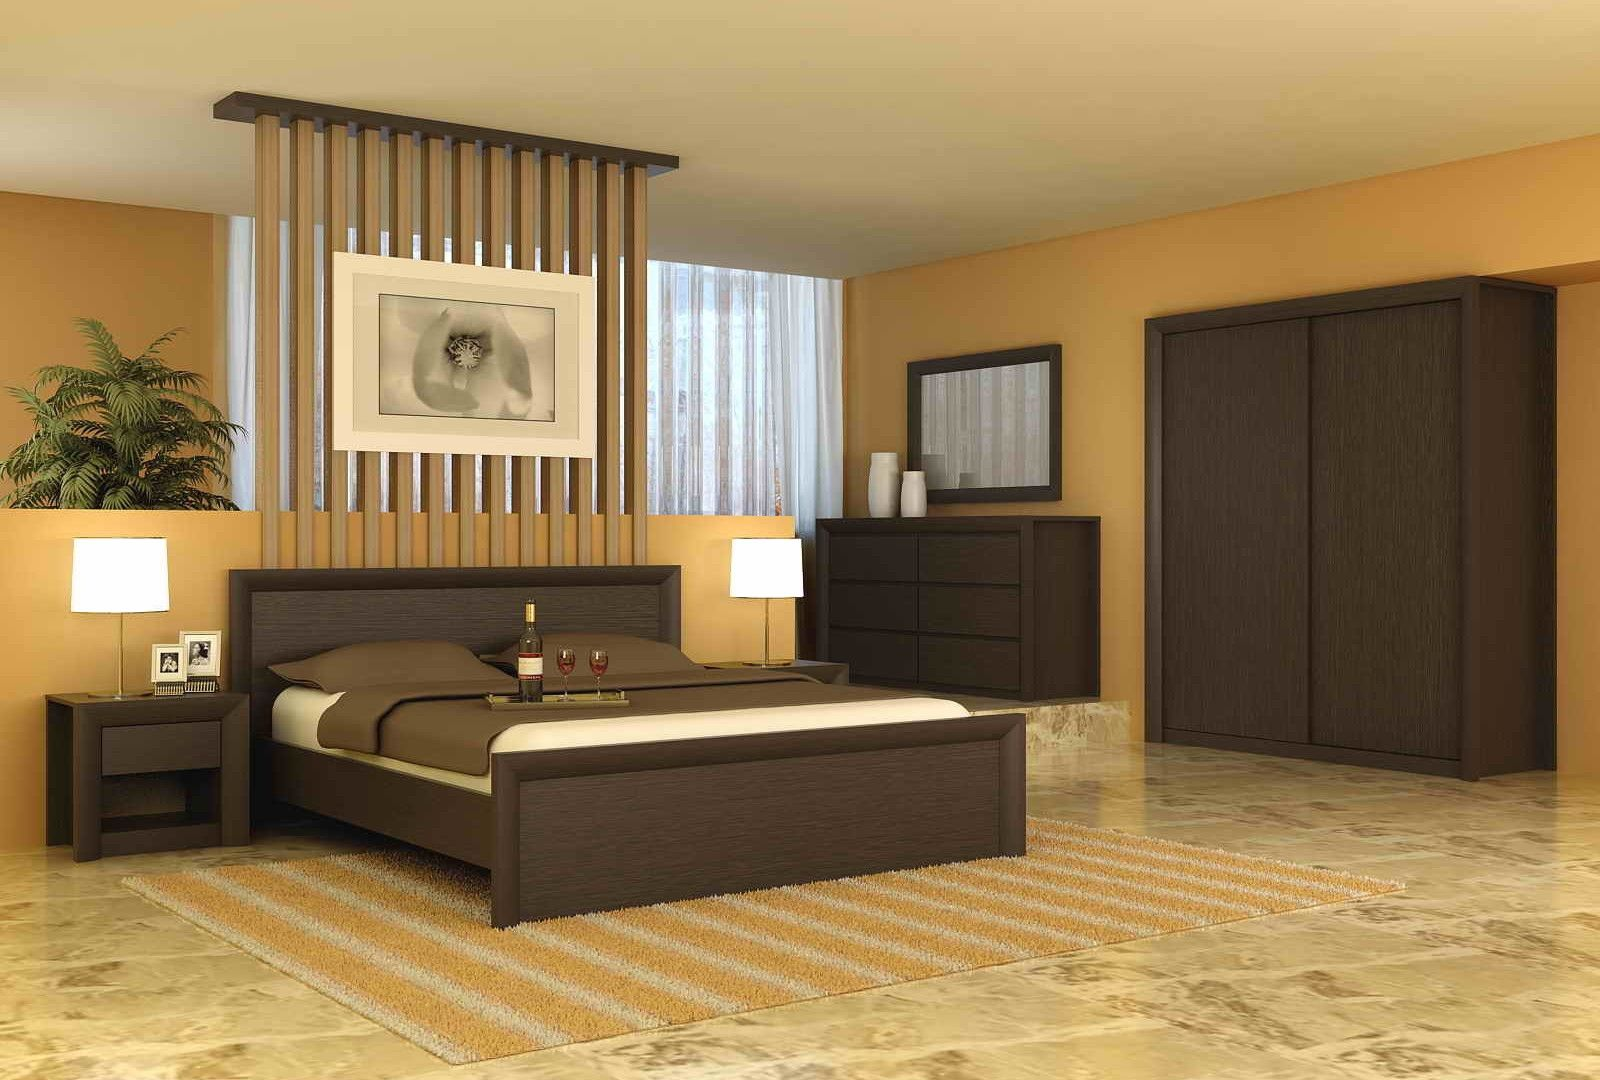 Modern Bedroom Styles Simple Bedroom Wall Wardrobe Design Simple Modern Bedroom